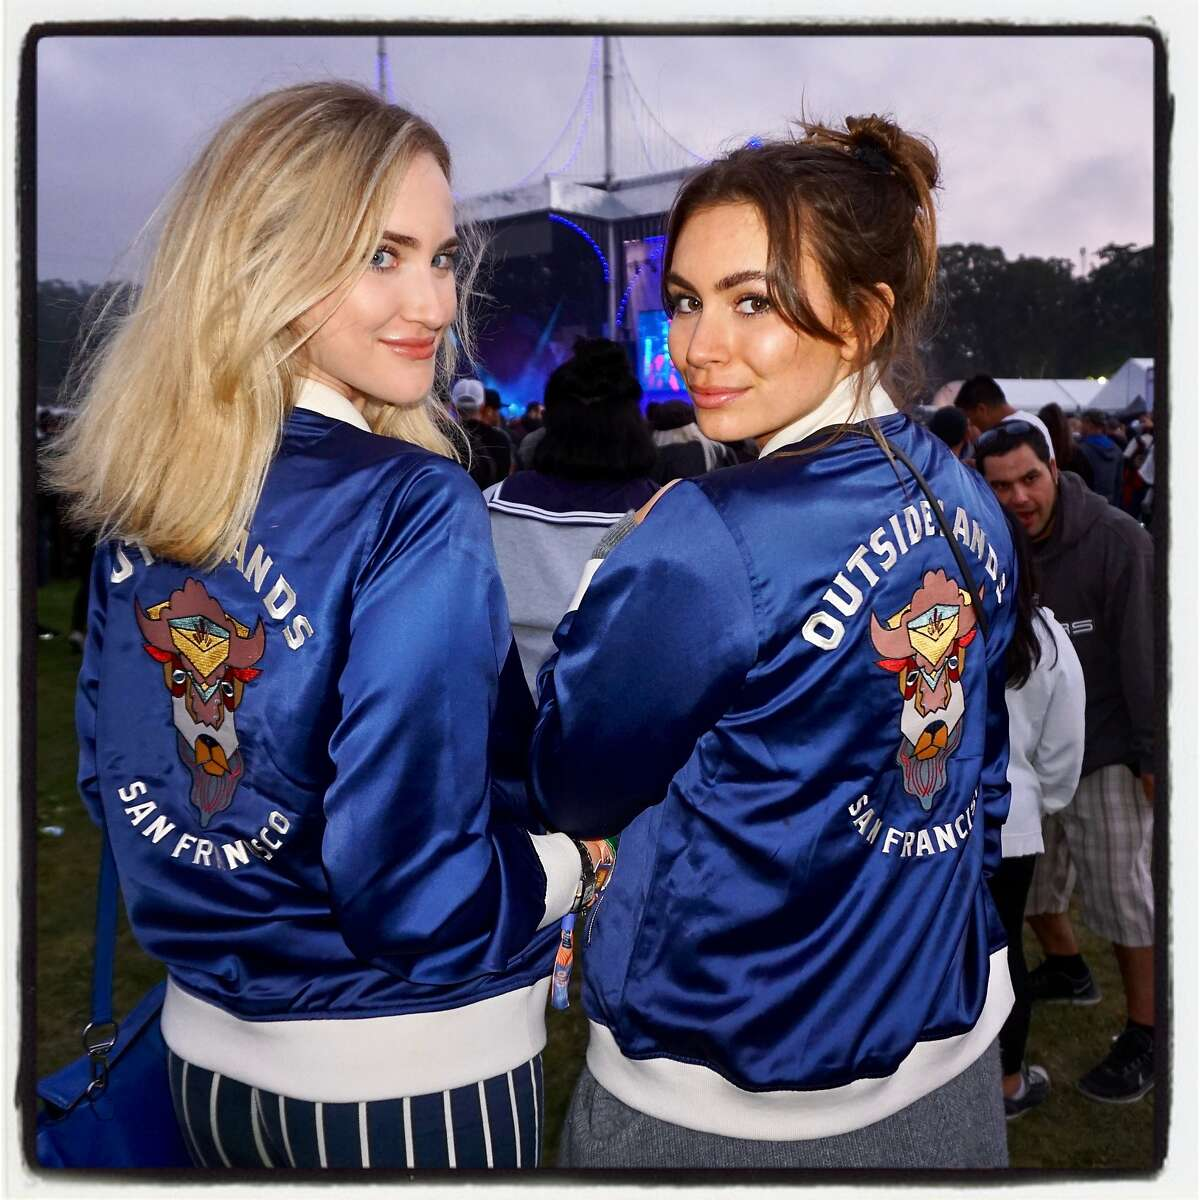 Emily Field (left) and her pal, Sophie Simmons, wearing matching Bison jackets at at Outside Lands. Aug. 11, 2017.